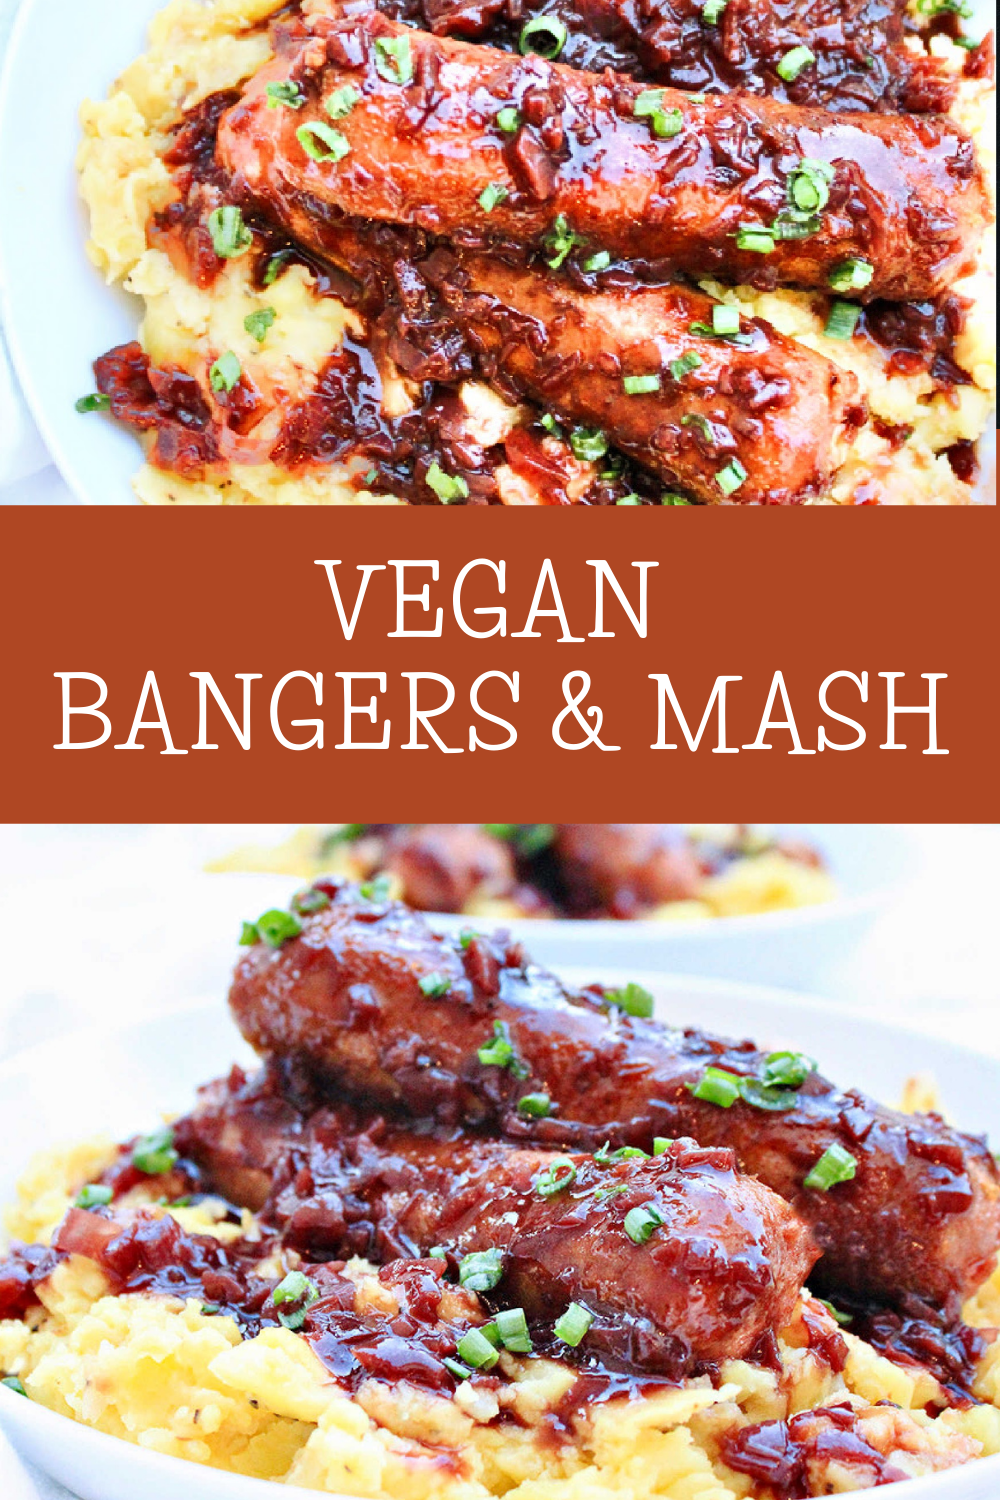 Bangers and Mash ~ A plant-based remake of the British classic with vegan bratwurst sausages, mustard-infused mashed potatoes, and onion gravy! via @thiswifecooks